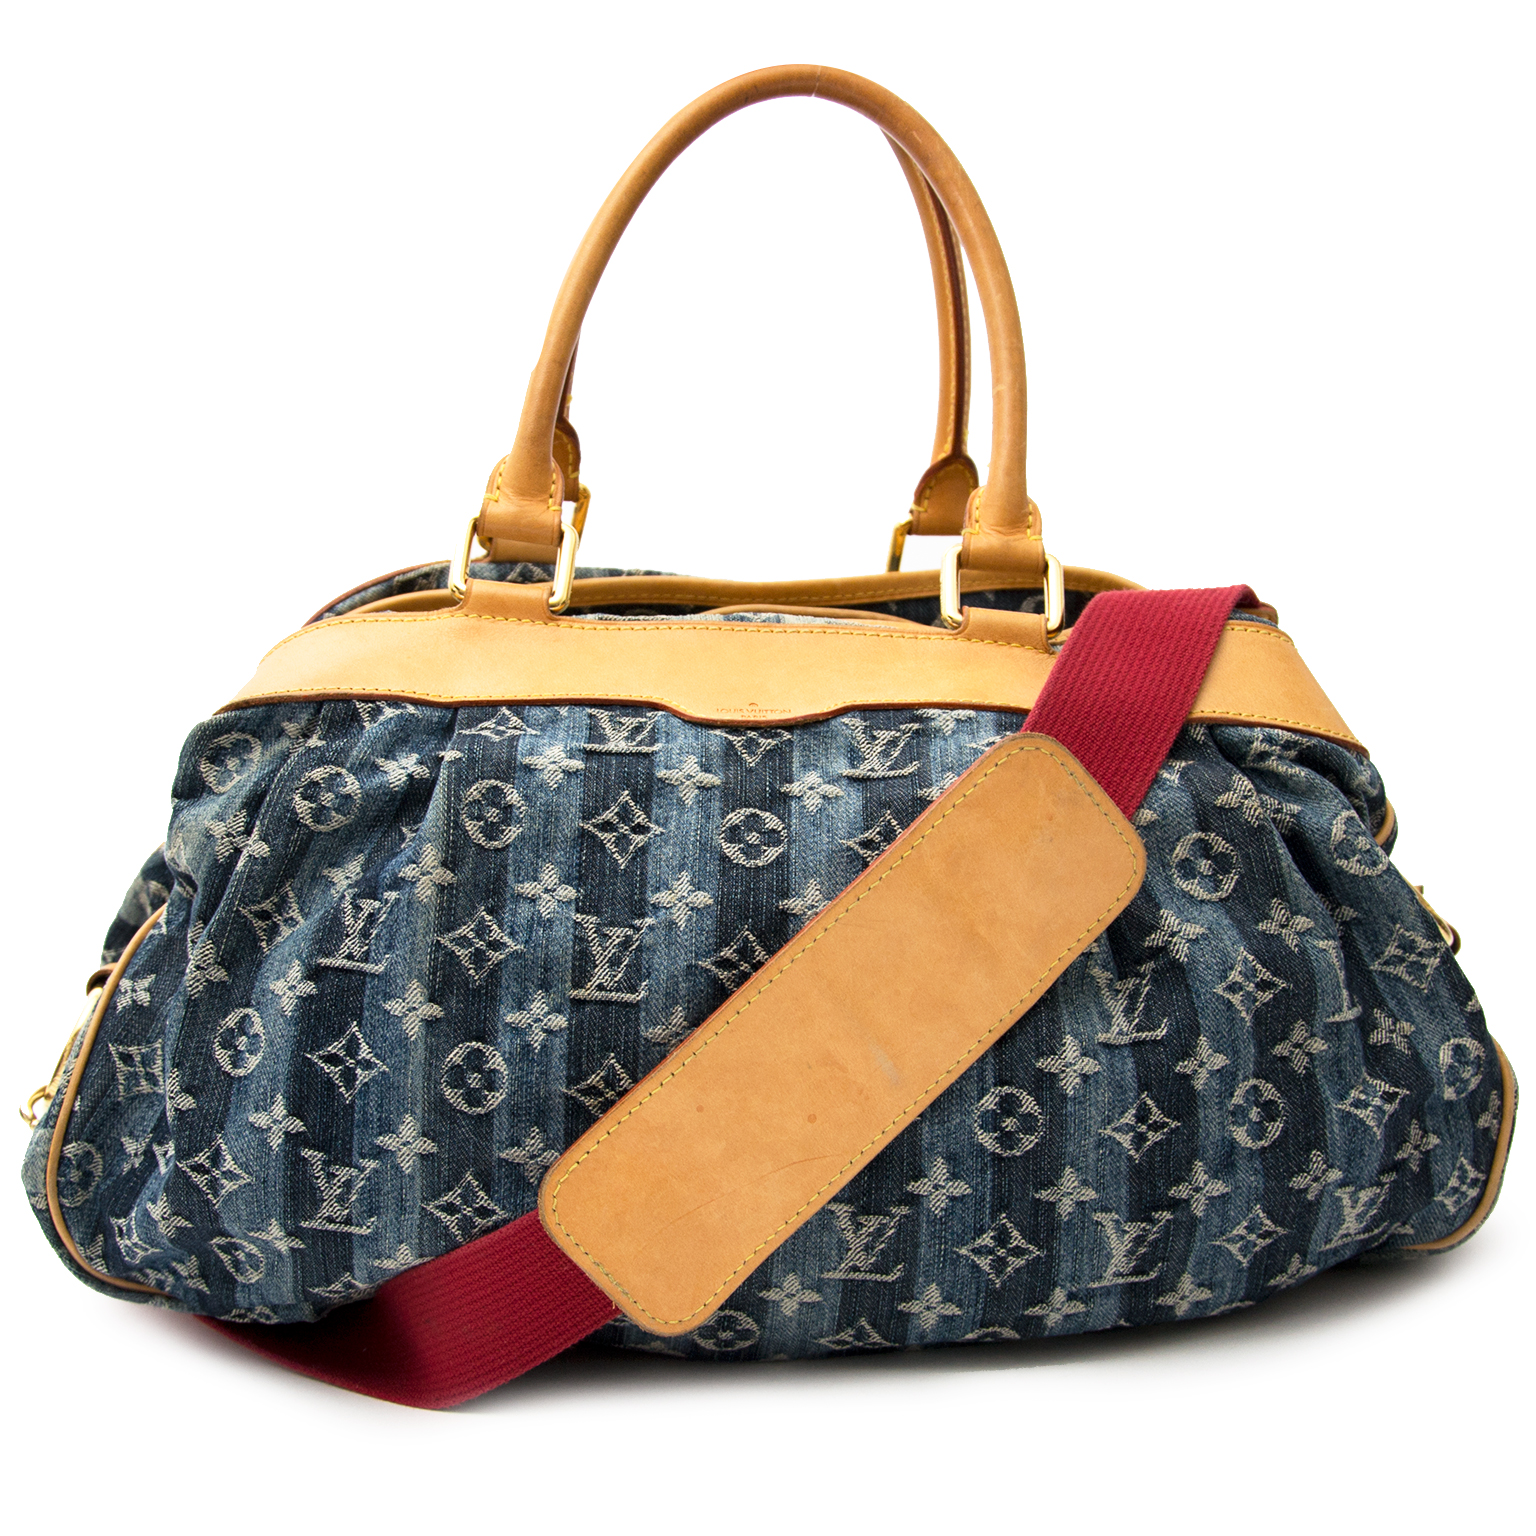 f81f9da9a969 Buy and sell your preloved designer bags for the best rates online at  Labellov luxury Louis Vuitton Denim Cruise Cabas Raye GM luxe merken  winkelen ...